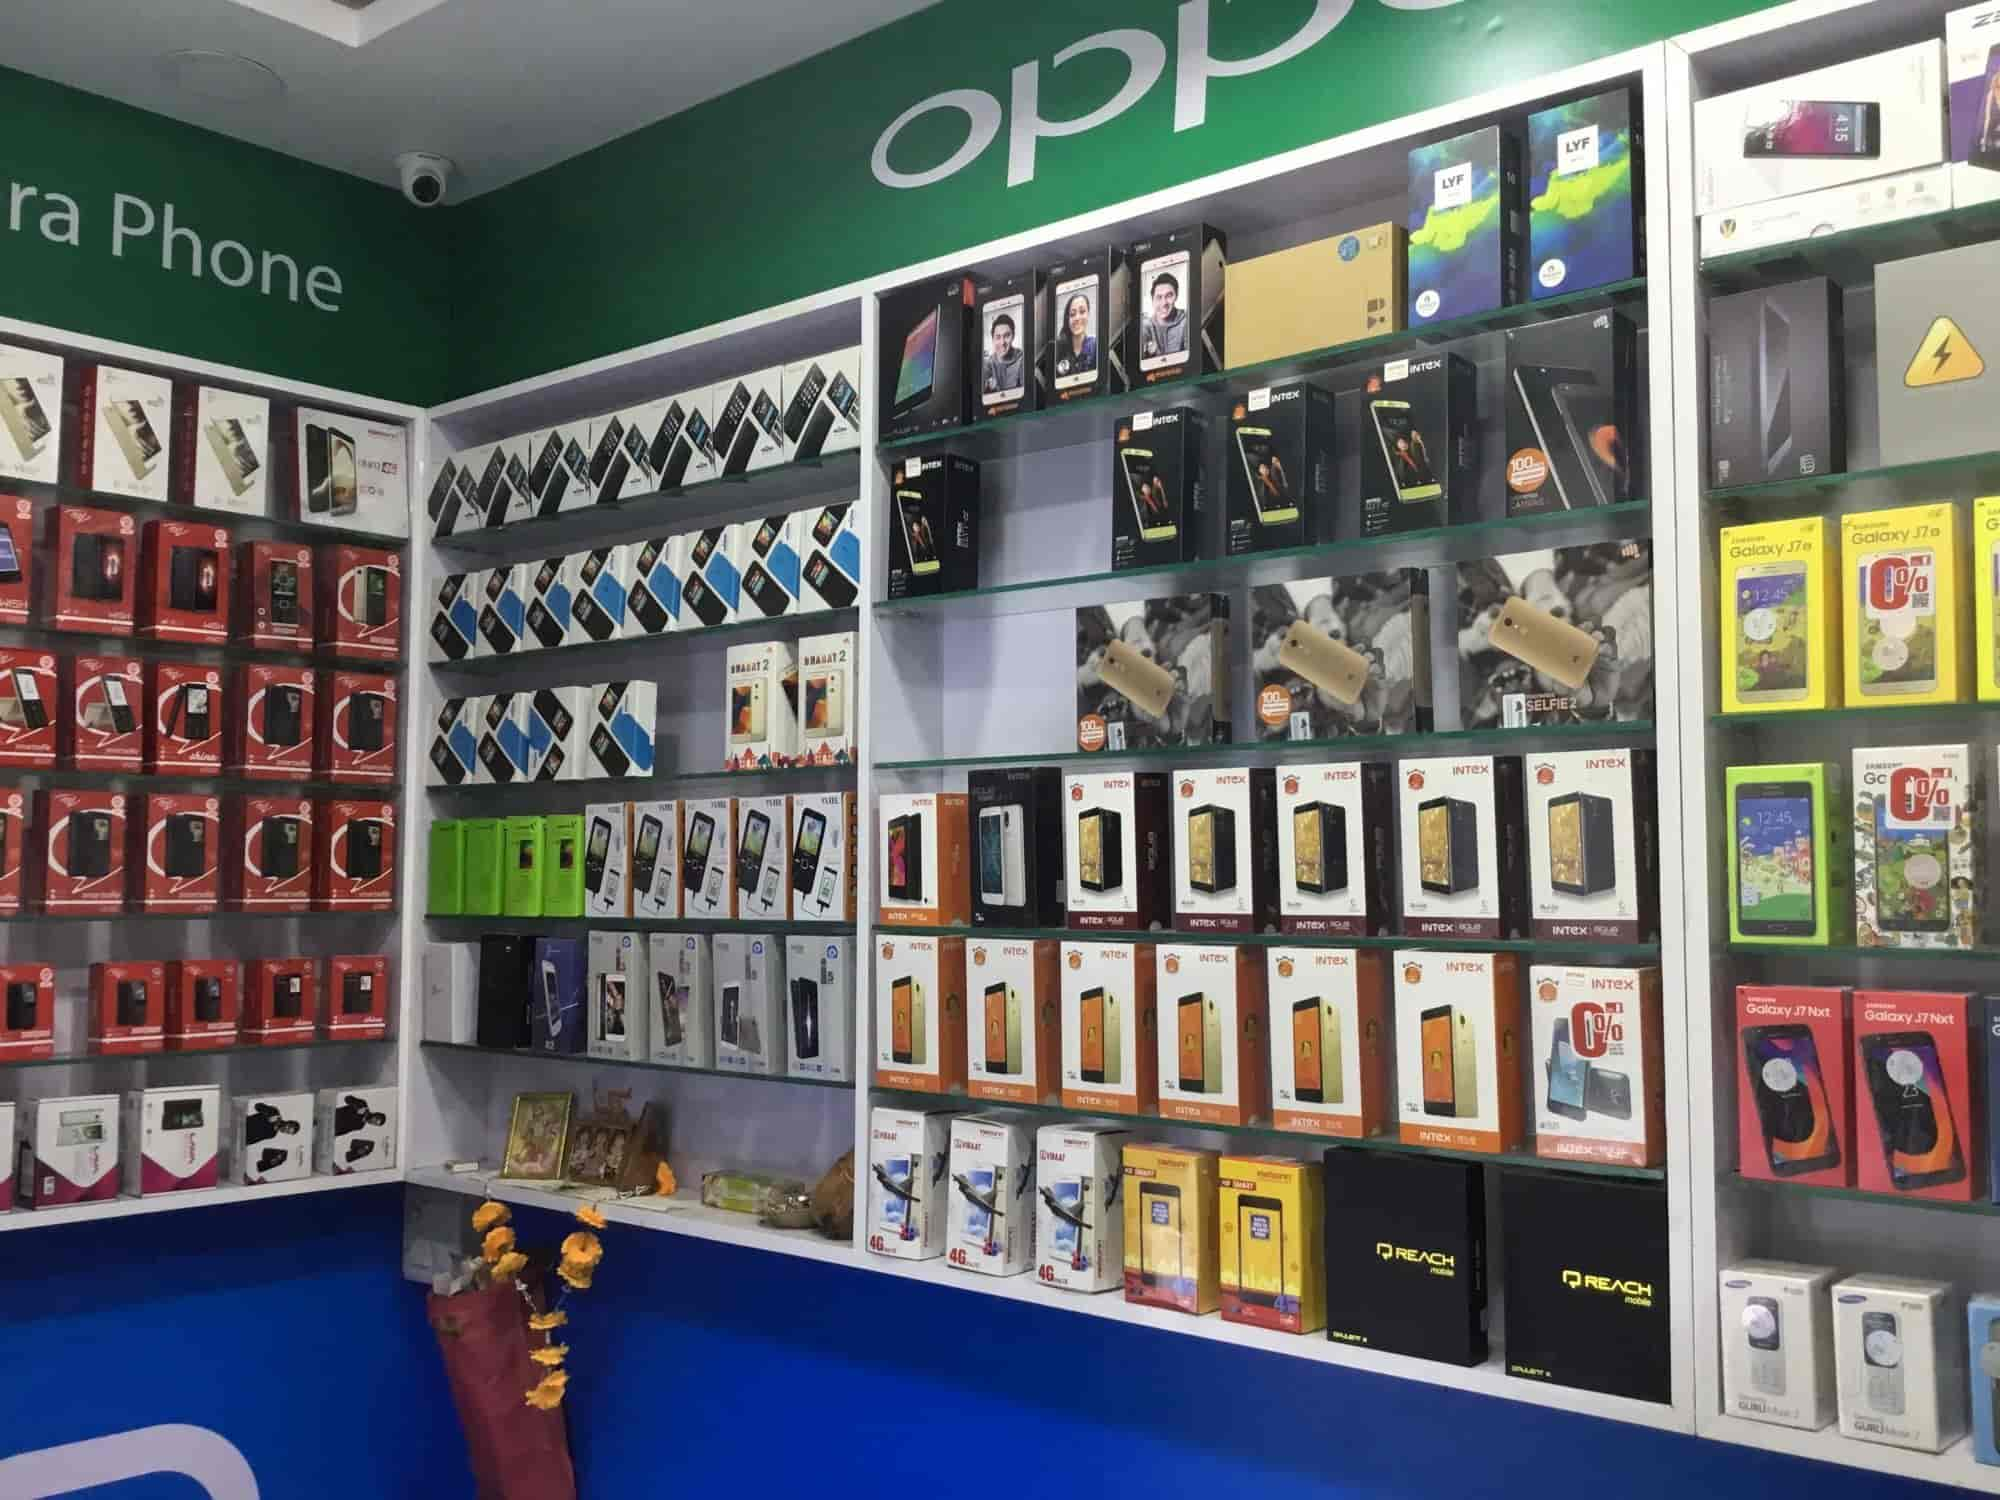 mobile zone chandigarh sector 46c chandigarh mobile phone dealers 1w65fwv